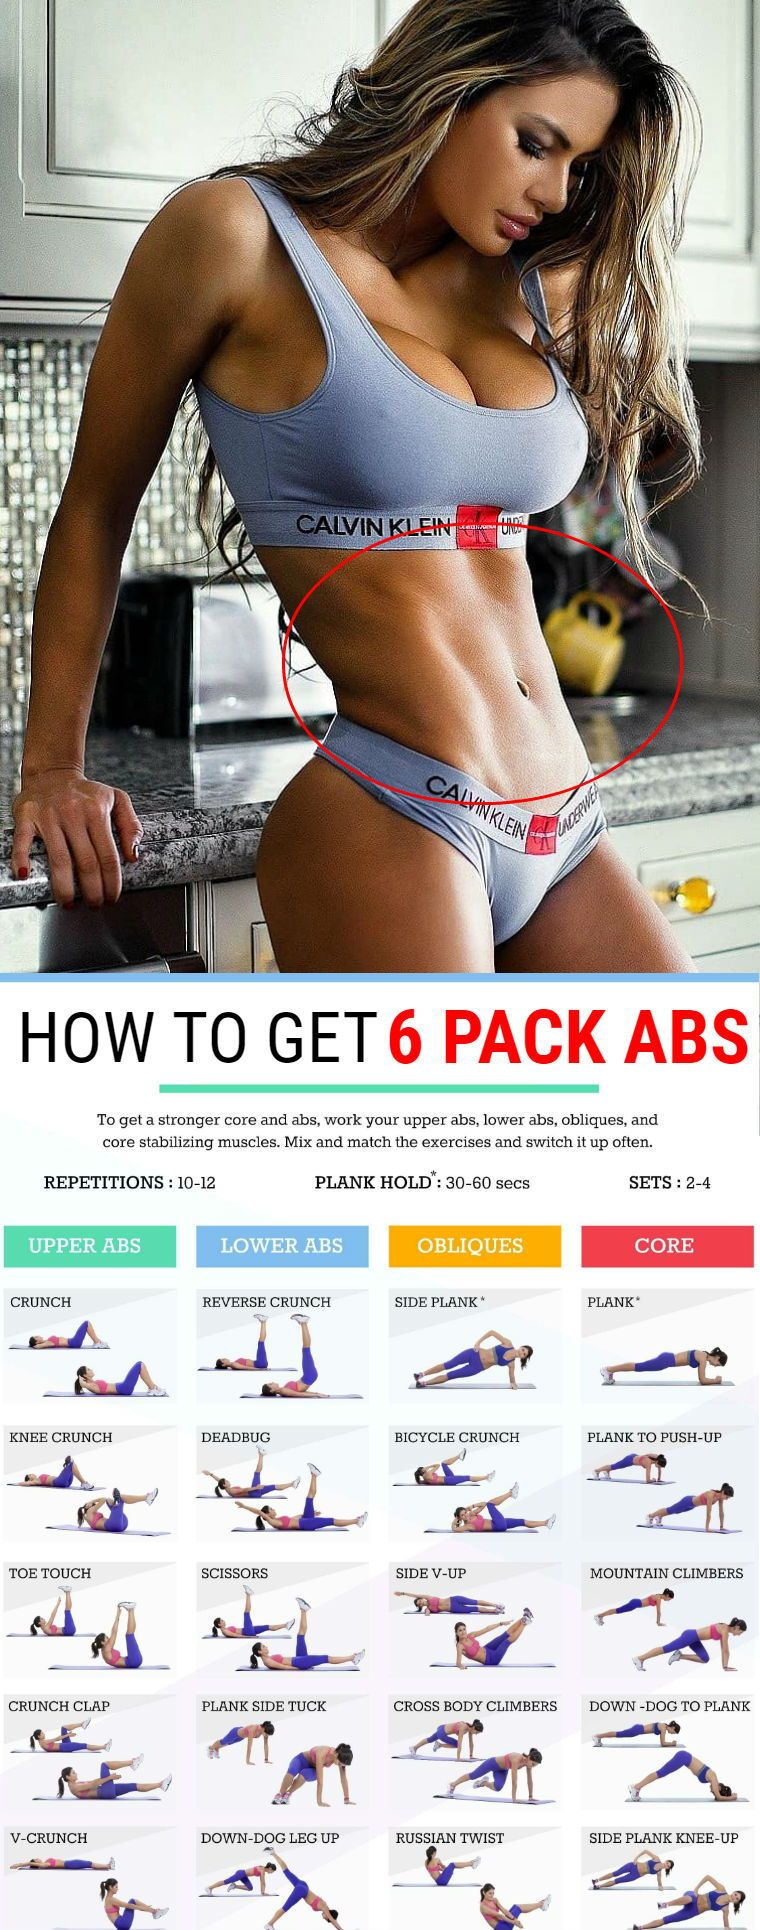 6 Standing Abs Exercises For A Sexy Six-Pack And Slender Body Sculpt